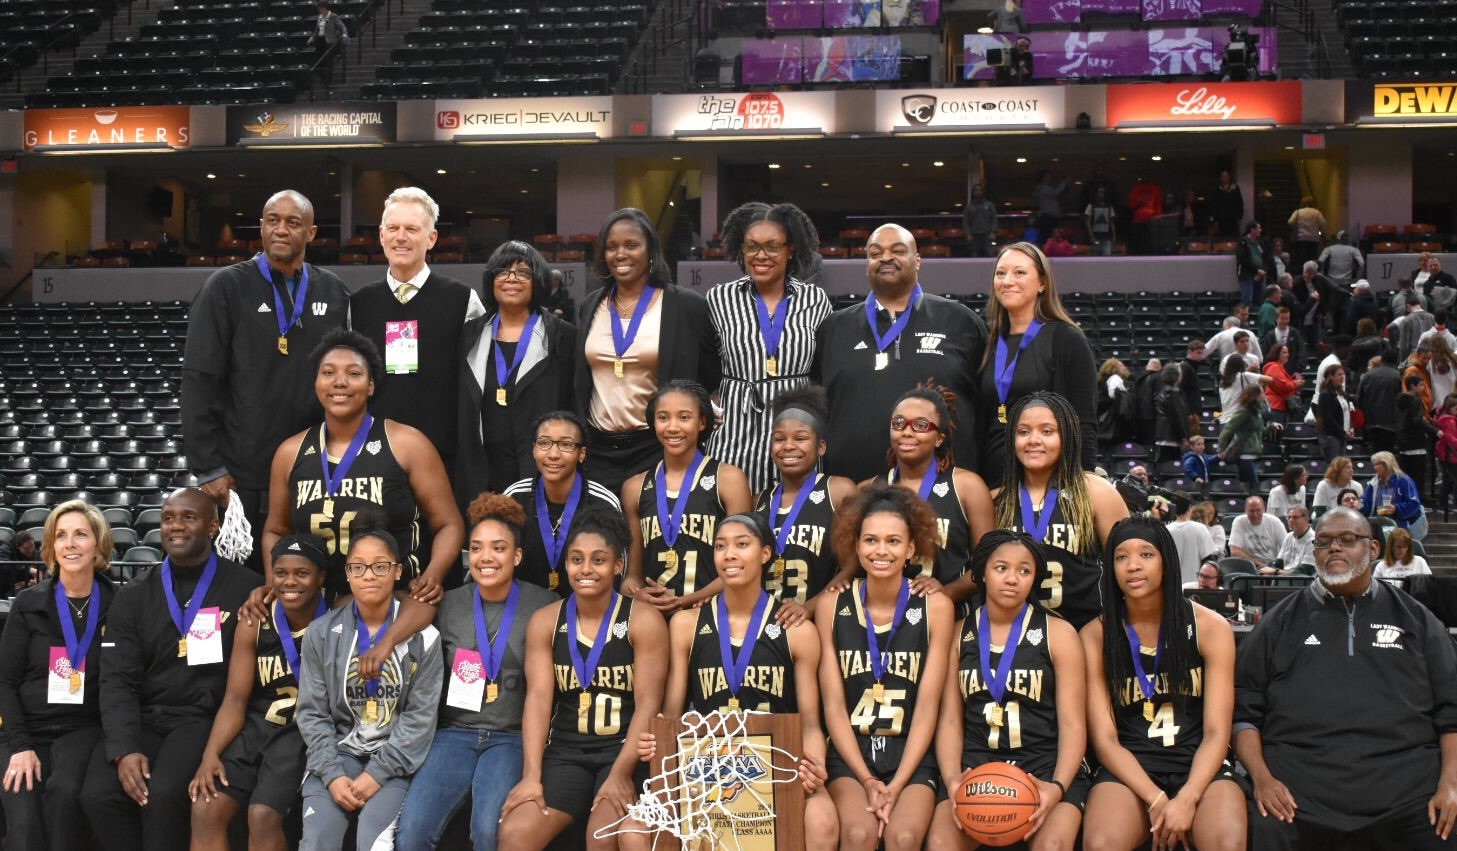 Congratulations to the 2018 IHSAA 4A Girls State Basketball Champions!